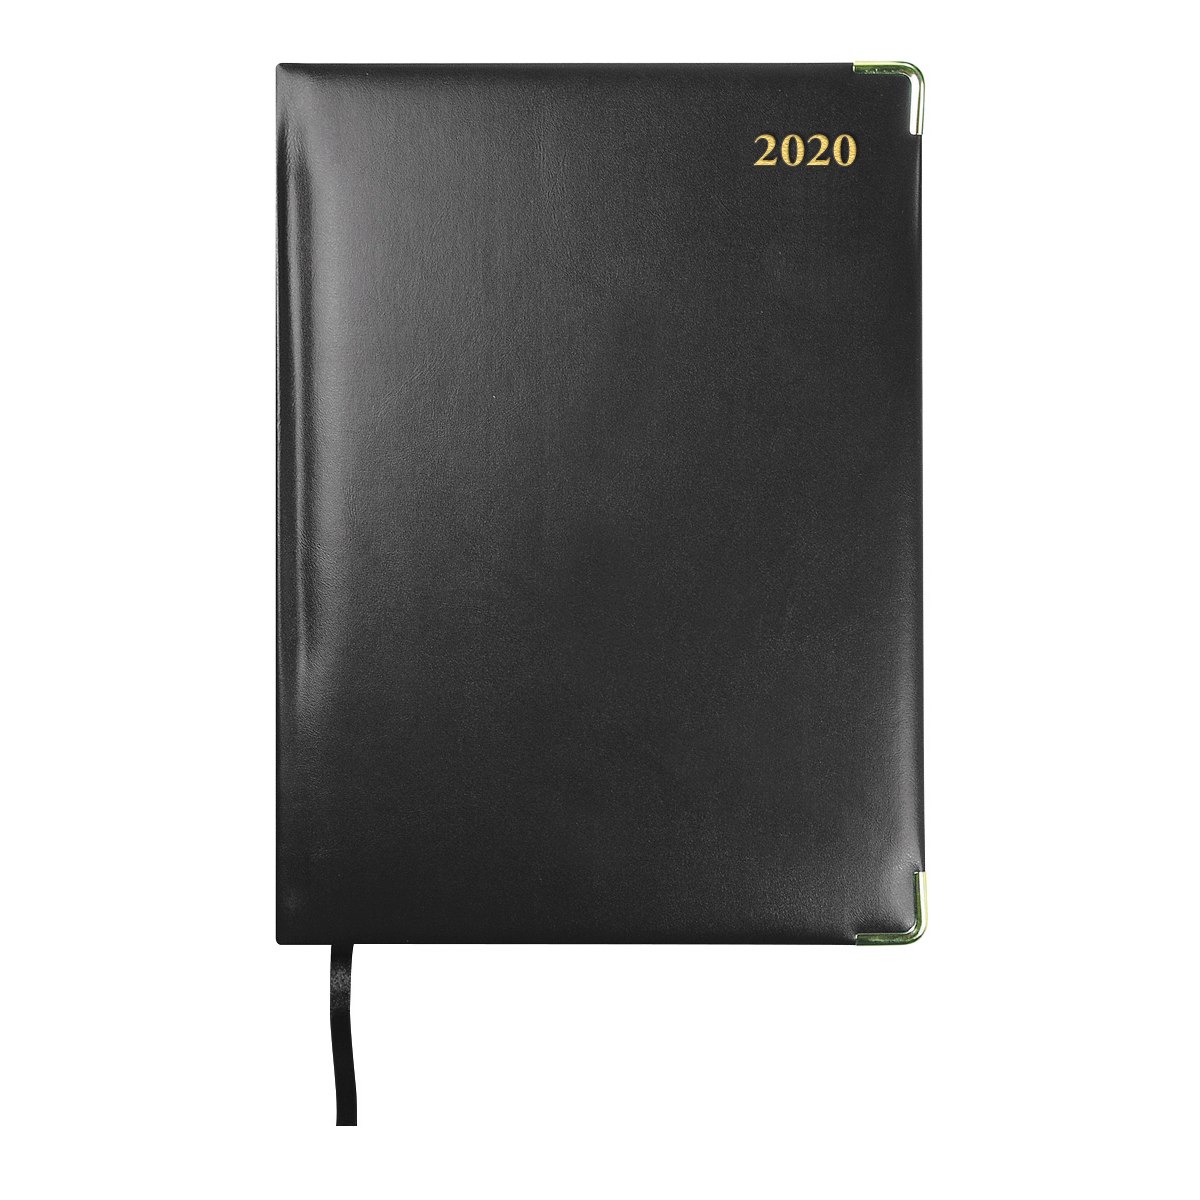 Collins 2020 Classic Compact Desk Diary Day to Page Sewn Binding 210x148mm Black Ref 1250V 2020